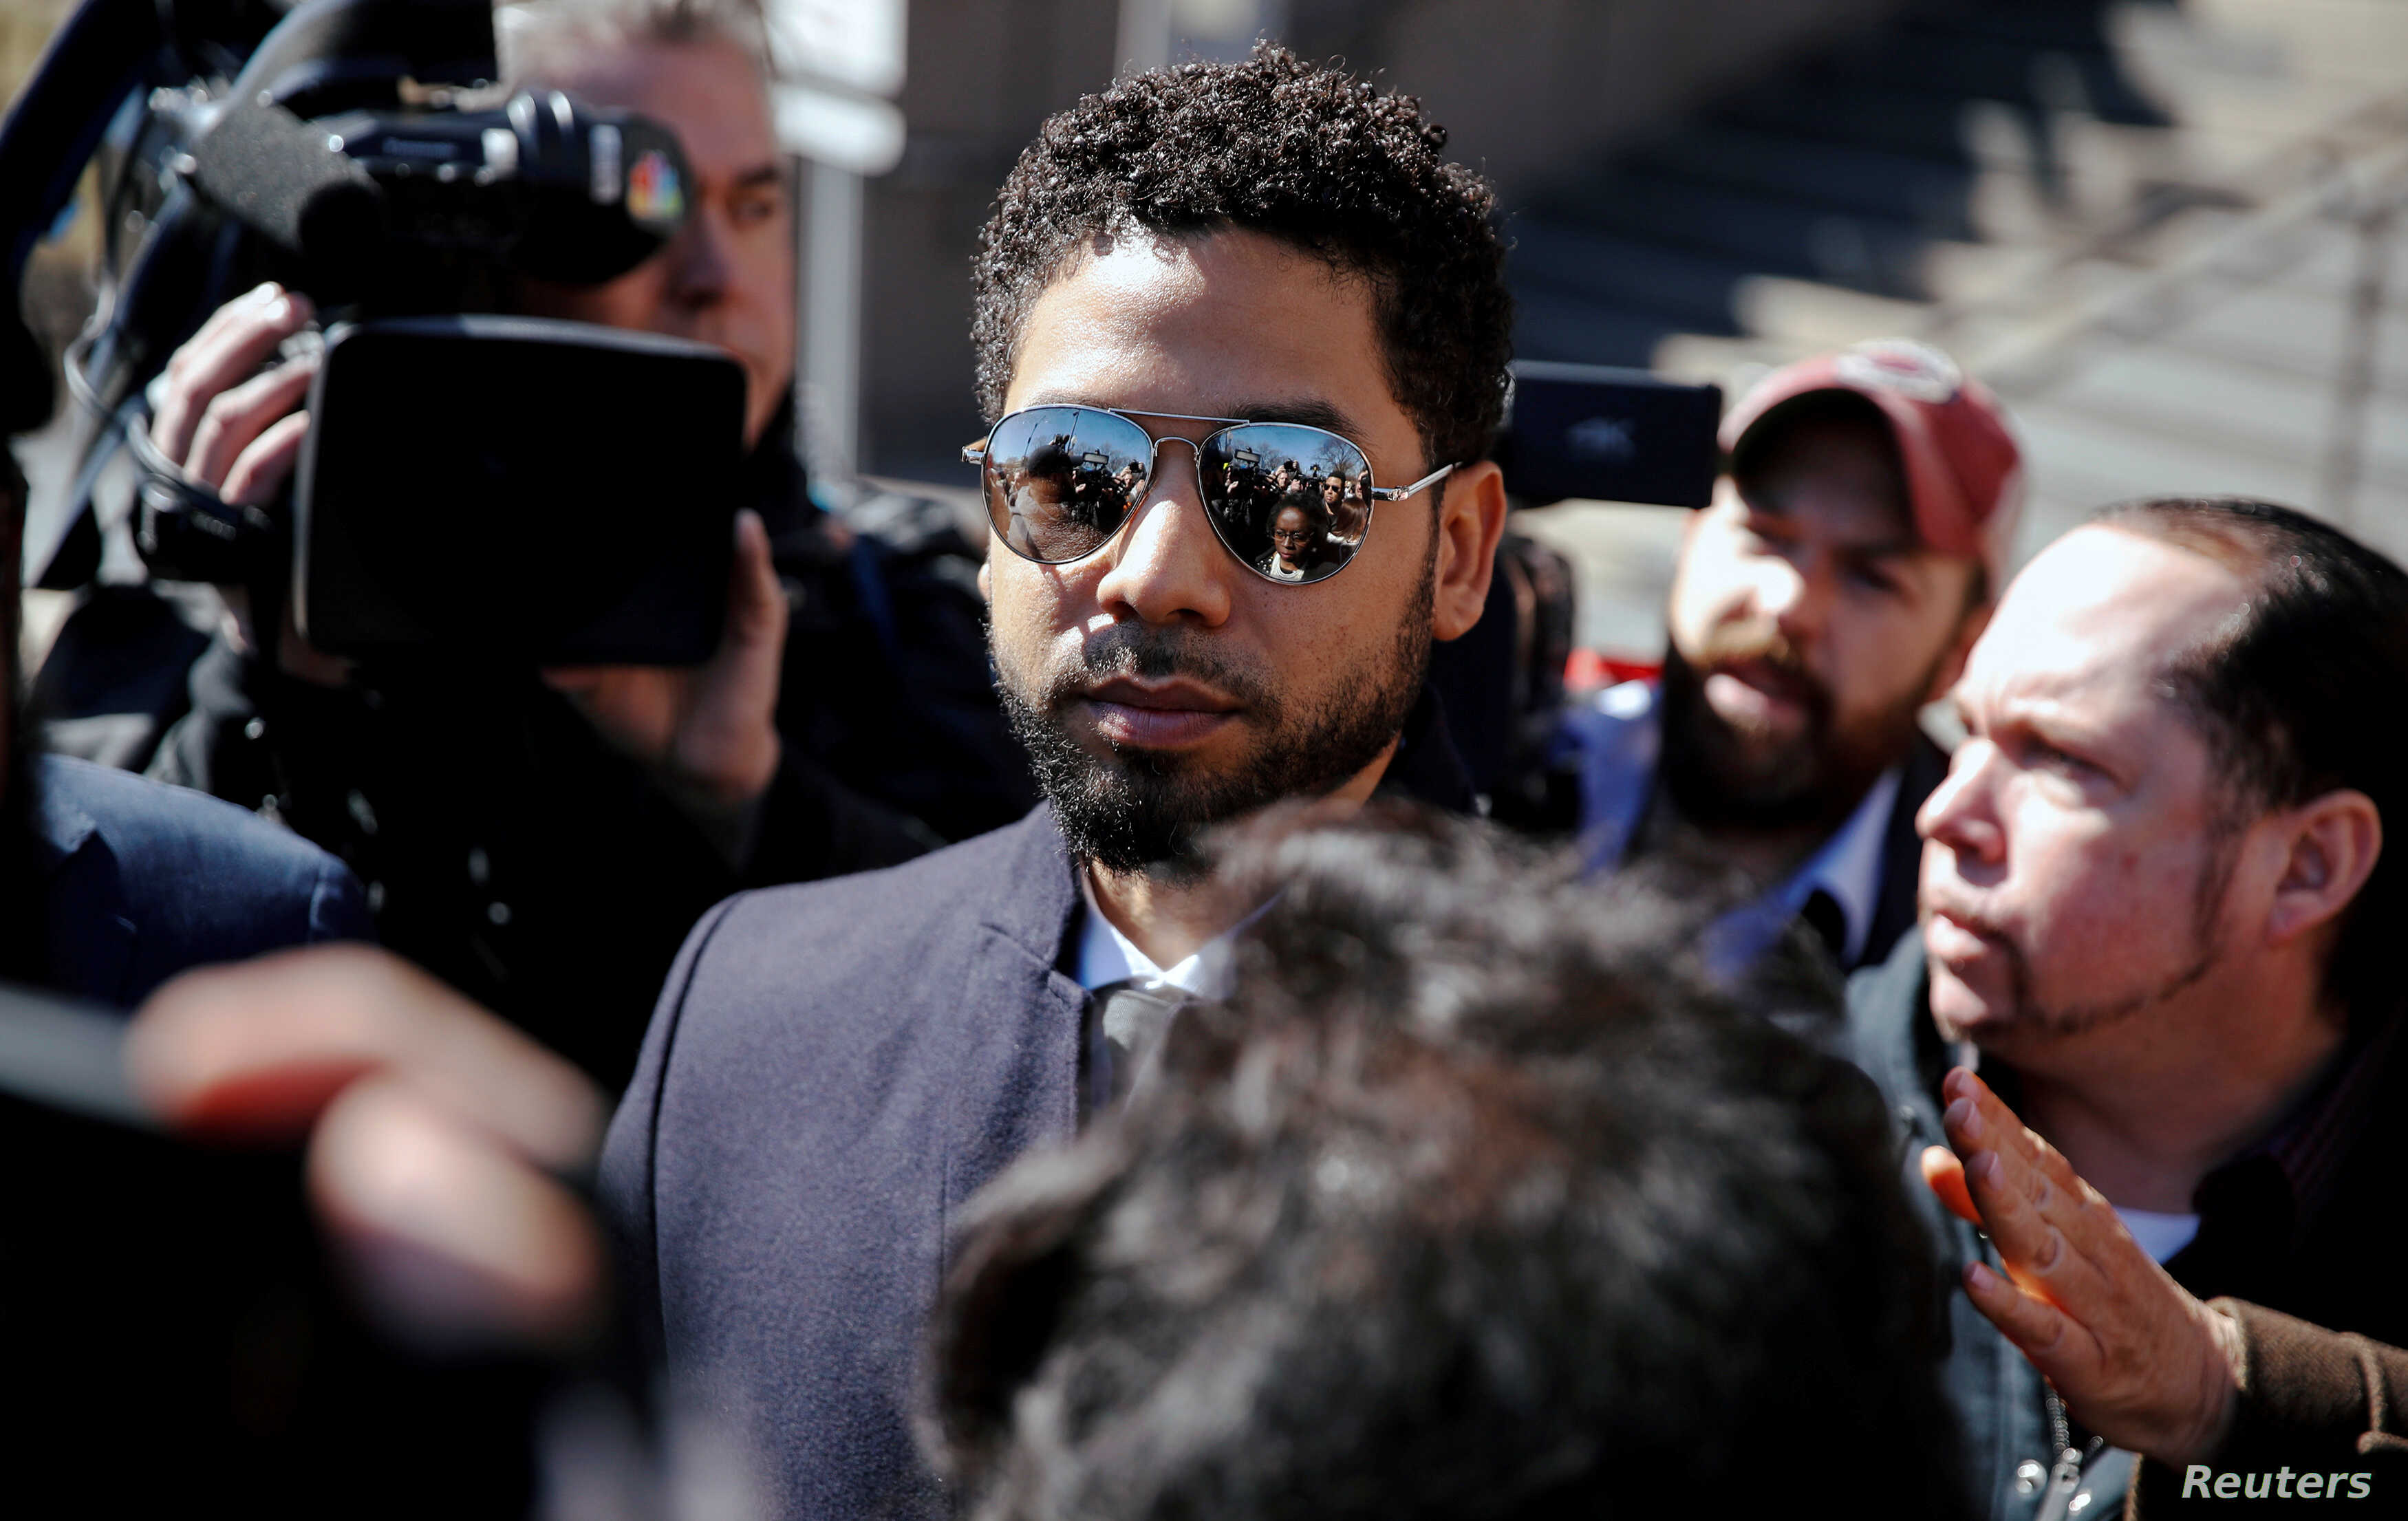 All Charges Dropped Against Actor Jussie Smollett | Voice of America